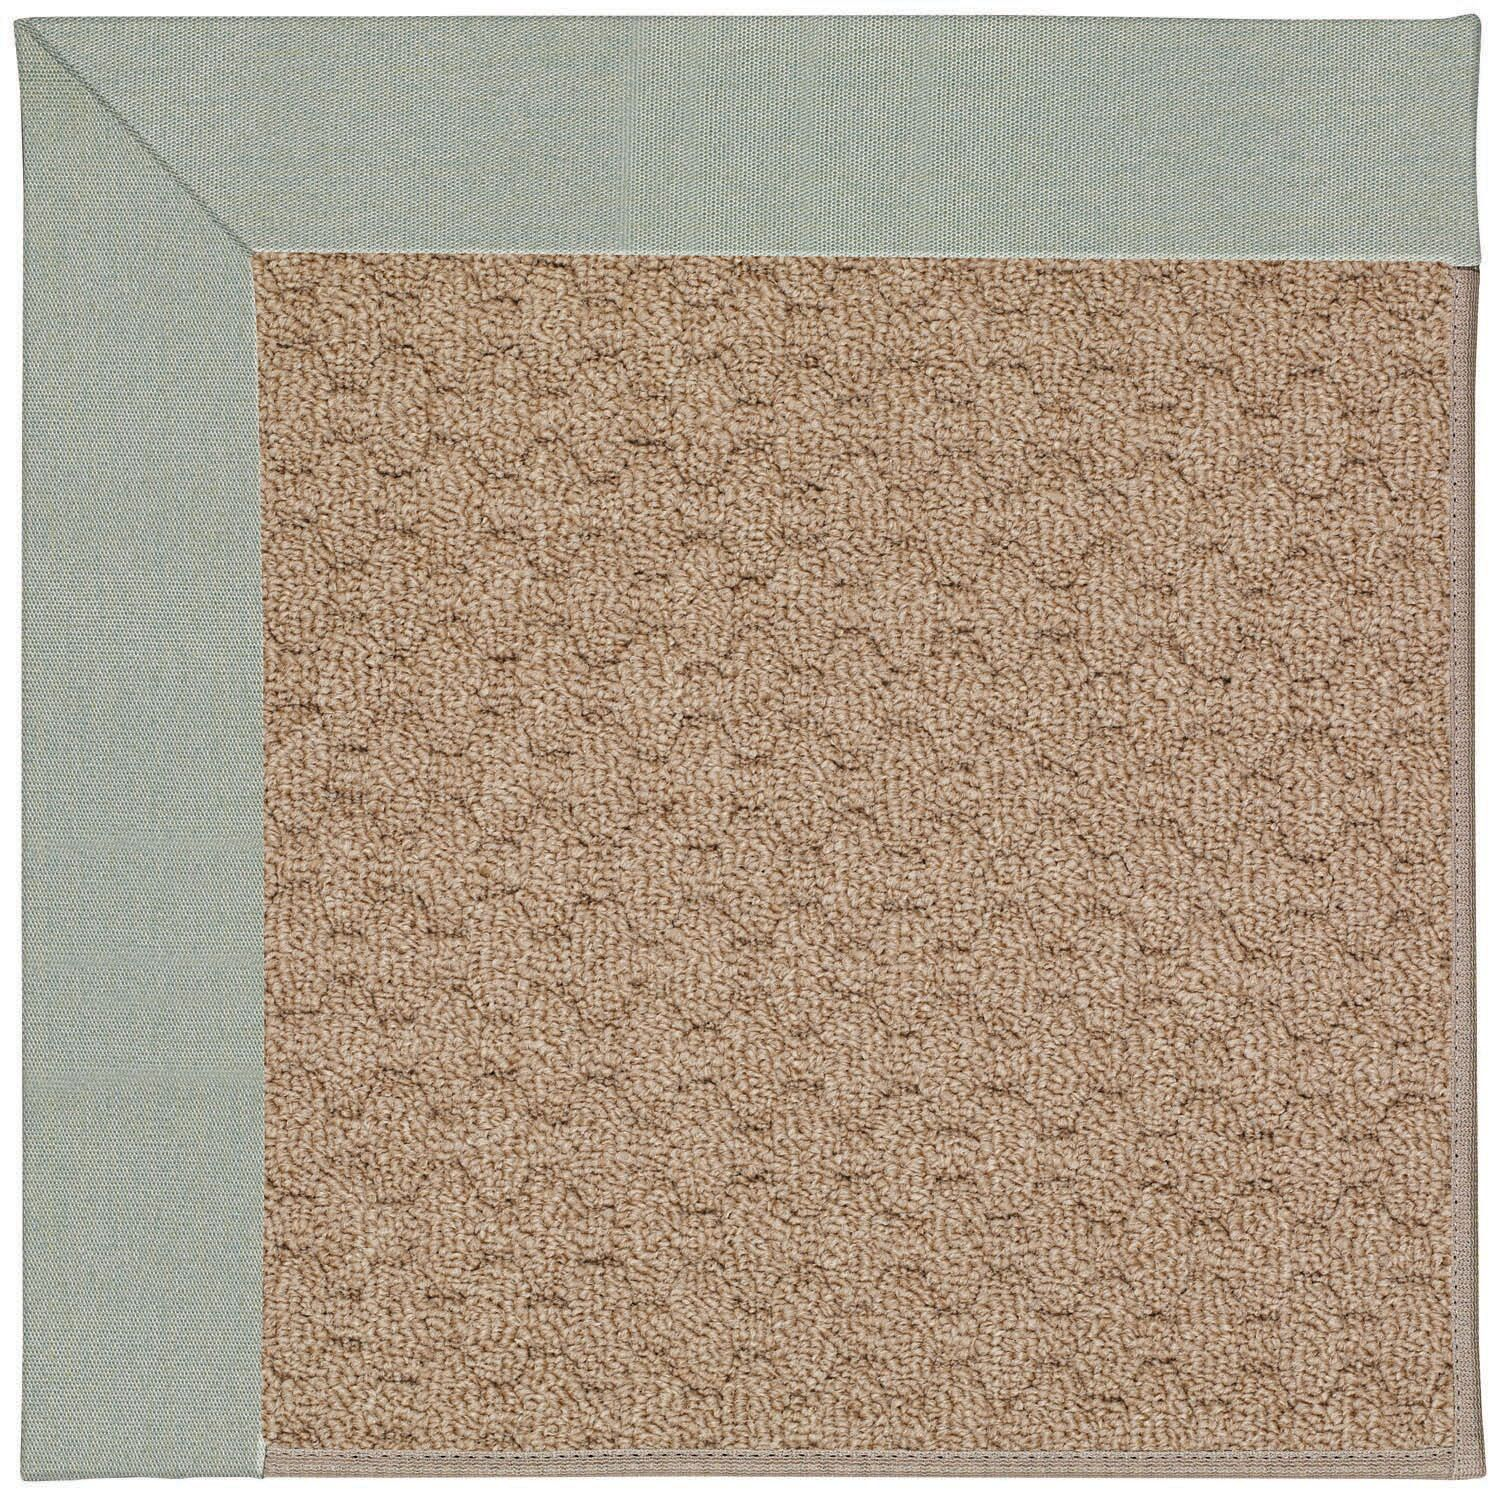 Lisle Machine Tufted Marine Blue and Beige Indoor/Outdoor Area Rug Rug Size: Rectangle 10' x 14'